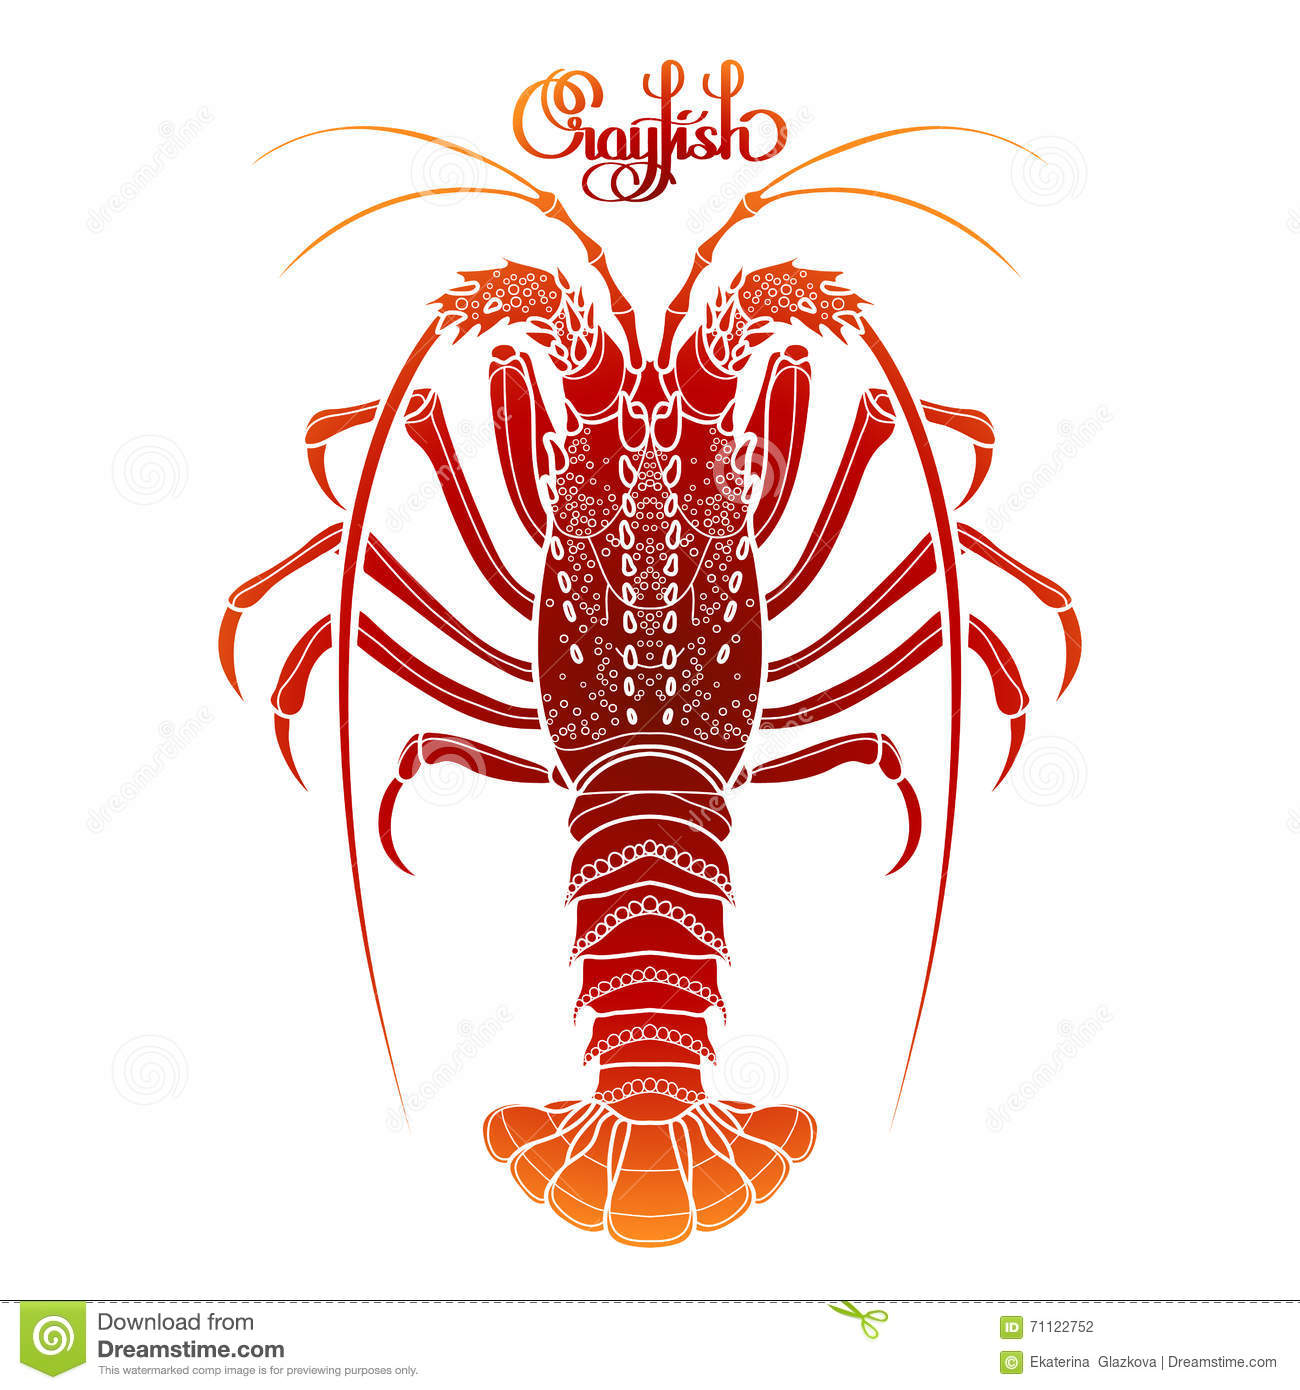 Crayfish Cartoons, Illustrations & Vector Stock Images